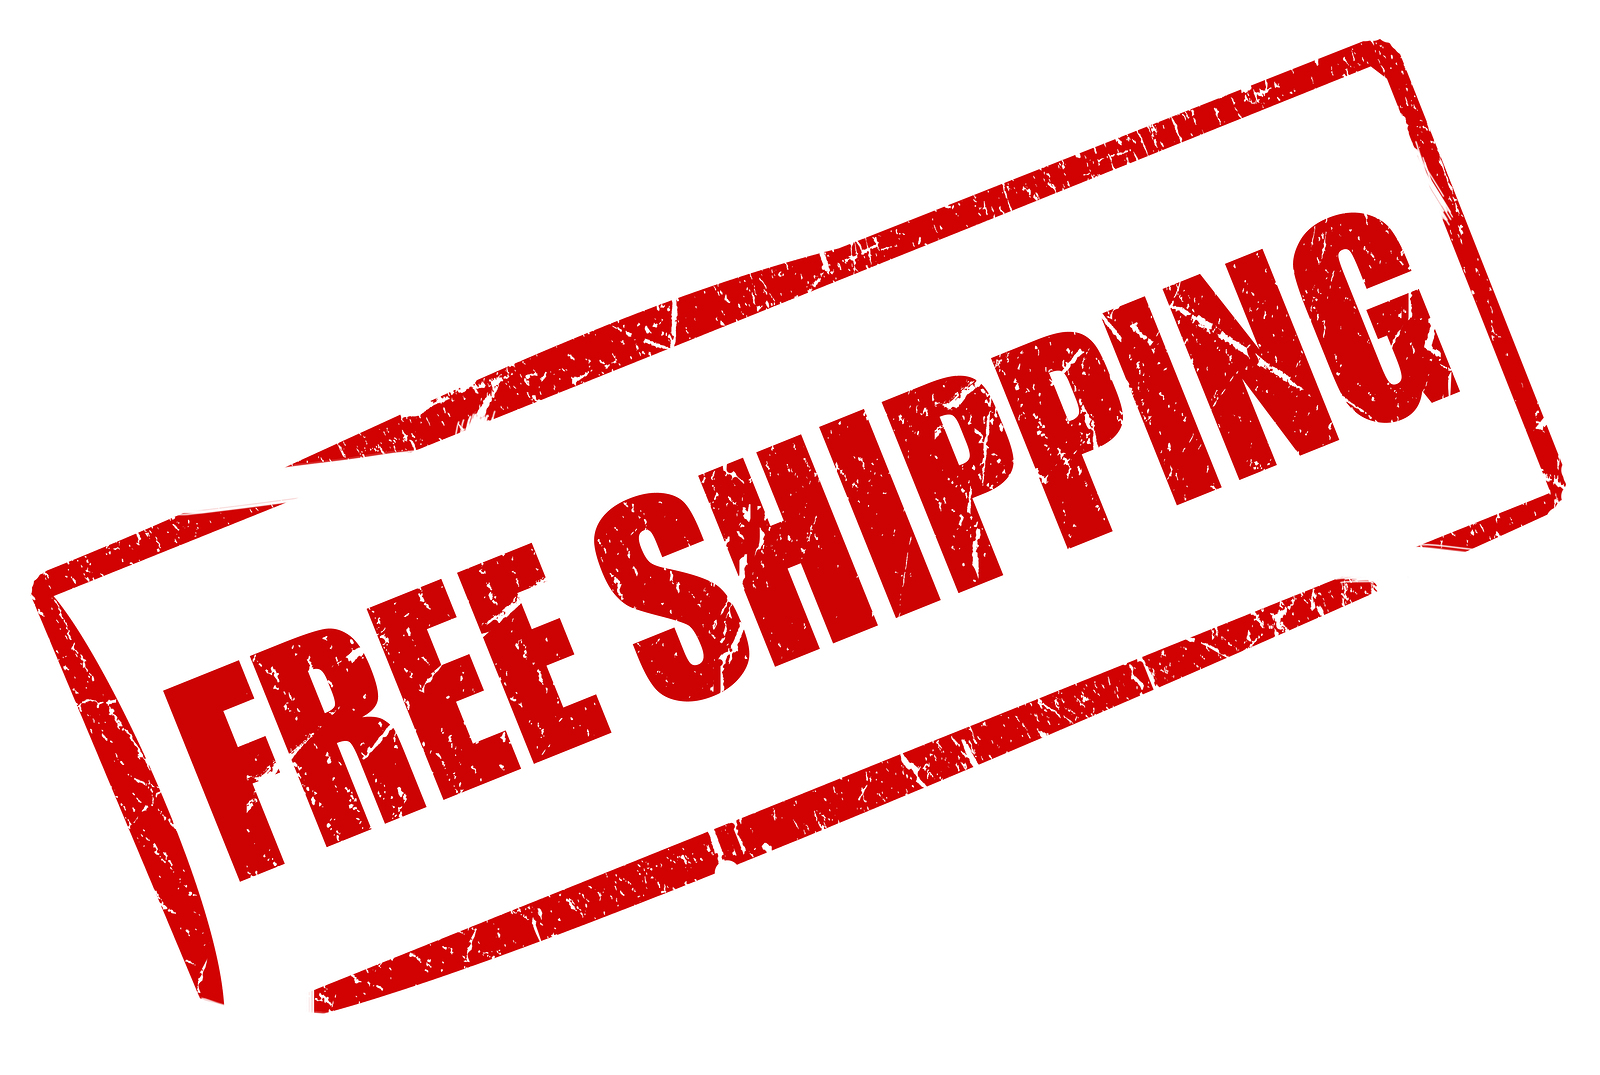 Free Shipping Cliparts, Download Free Clip Art, Free Clip.